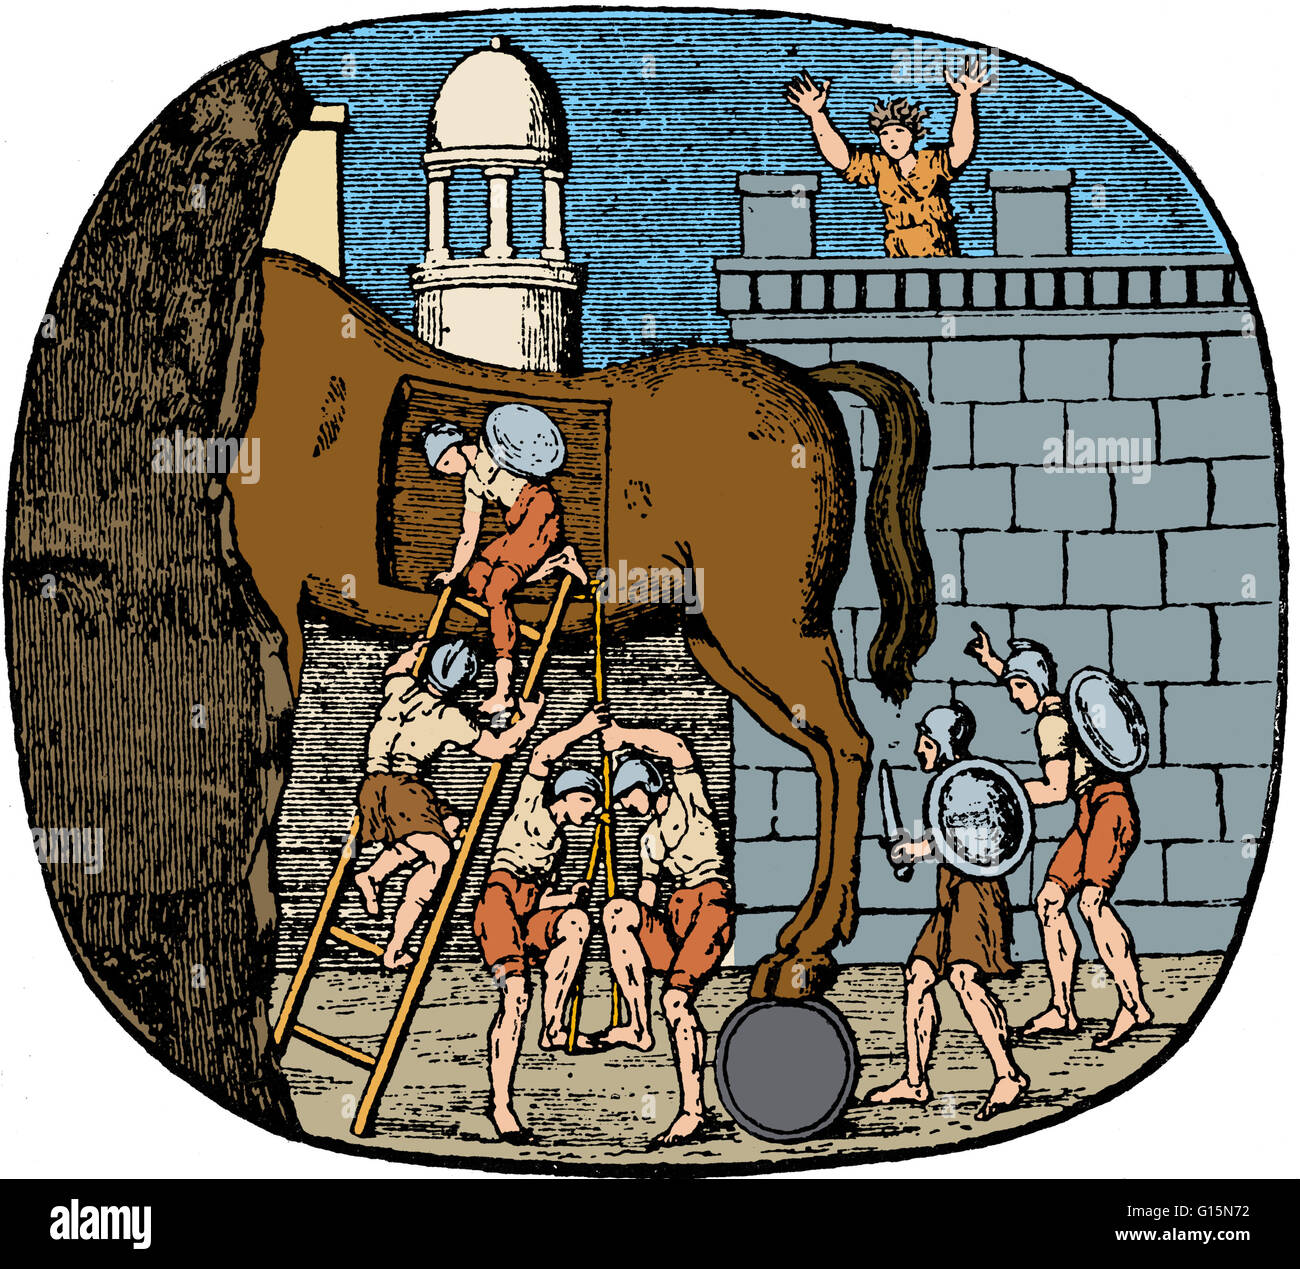 The Trojan Horse is a tale from the Trojan War about the stratagem that allowed the Greeks to finally enter the - Stock Image